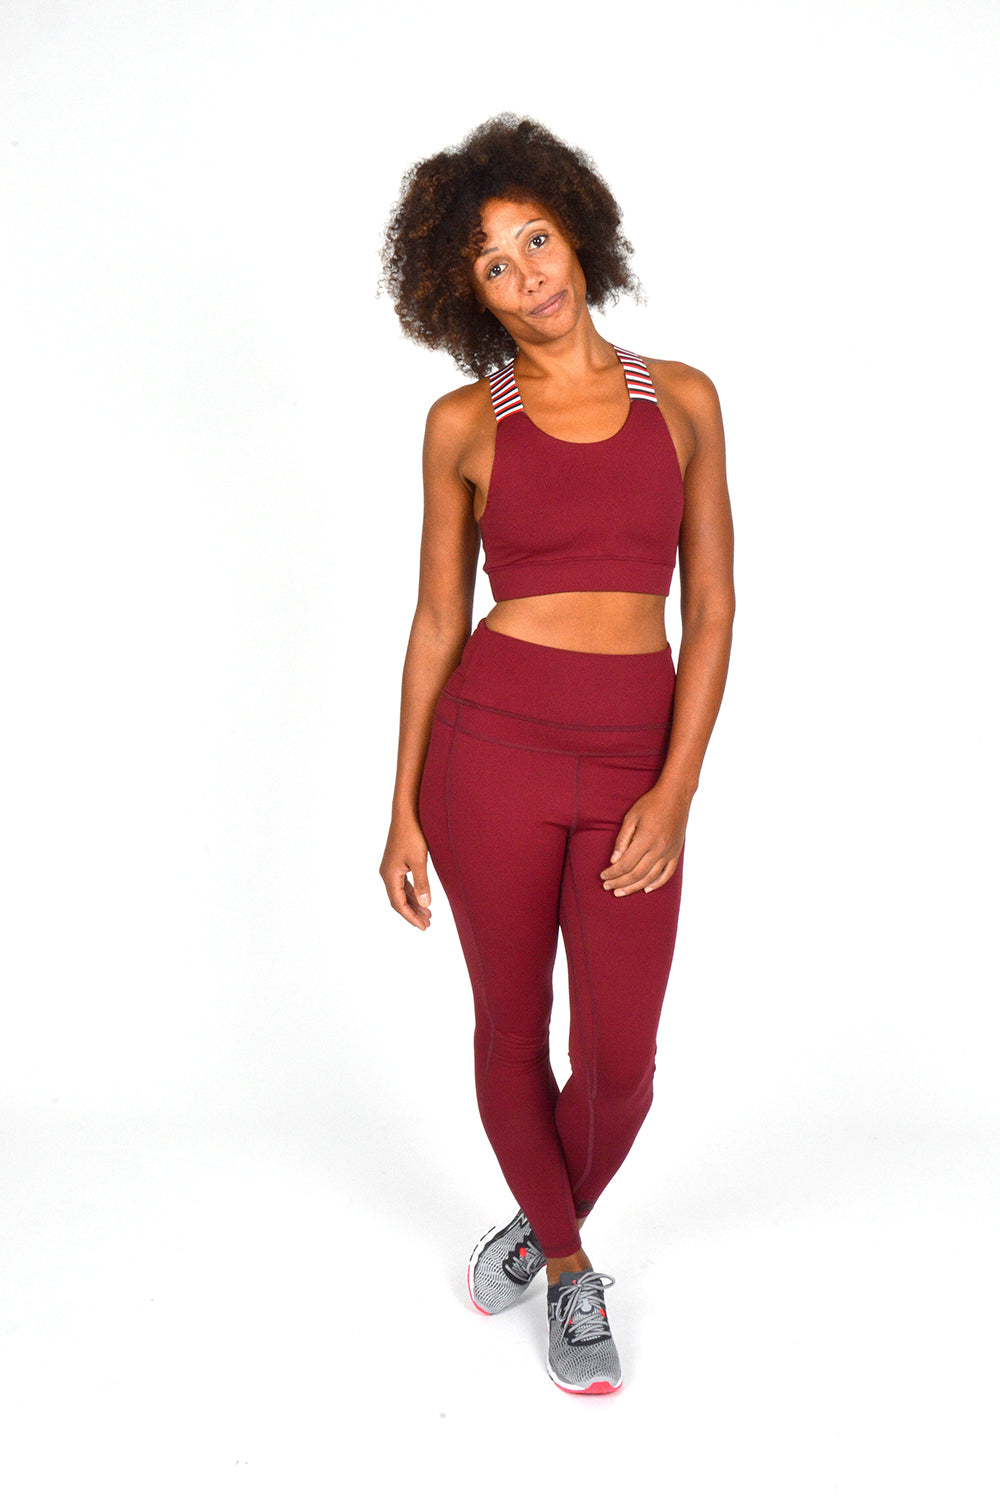 WOMENS X-OVER SPORTS BRA BURGUNDY O-1819-1